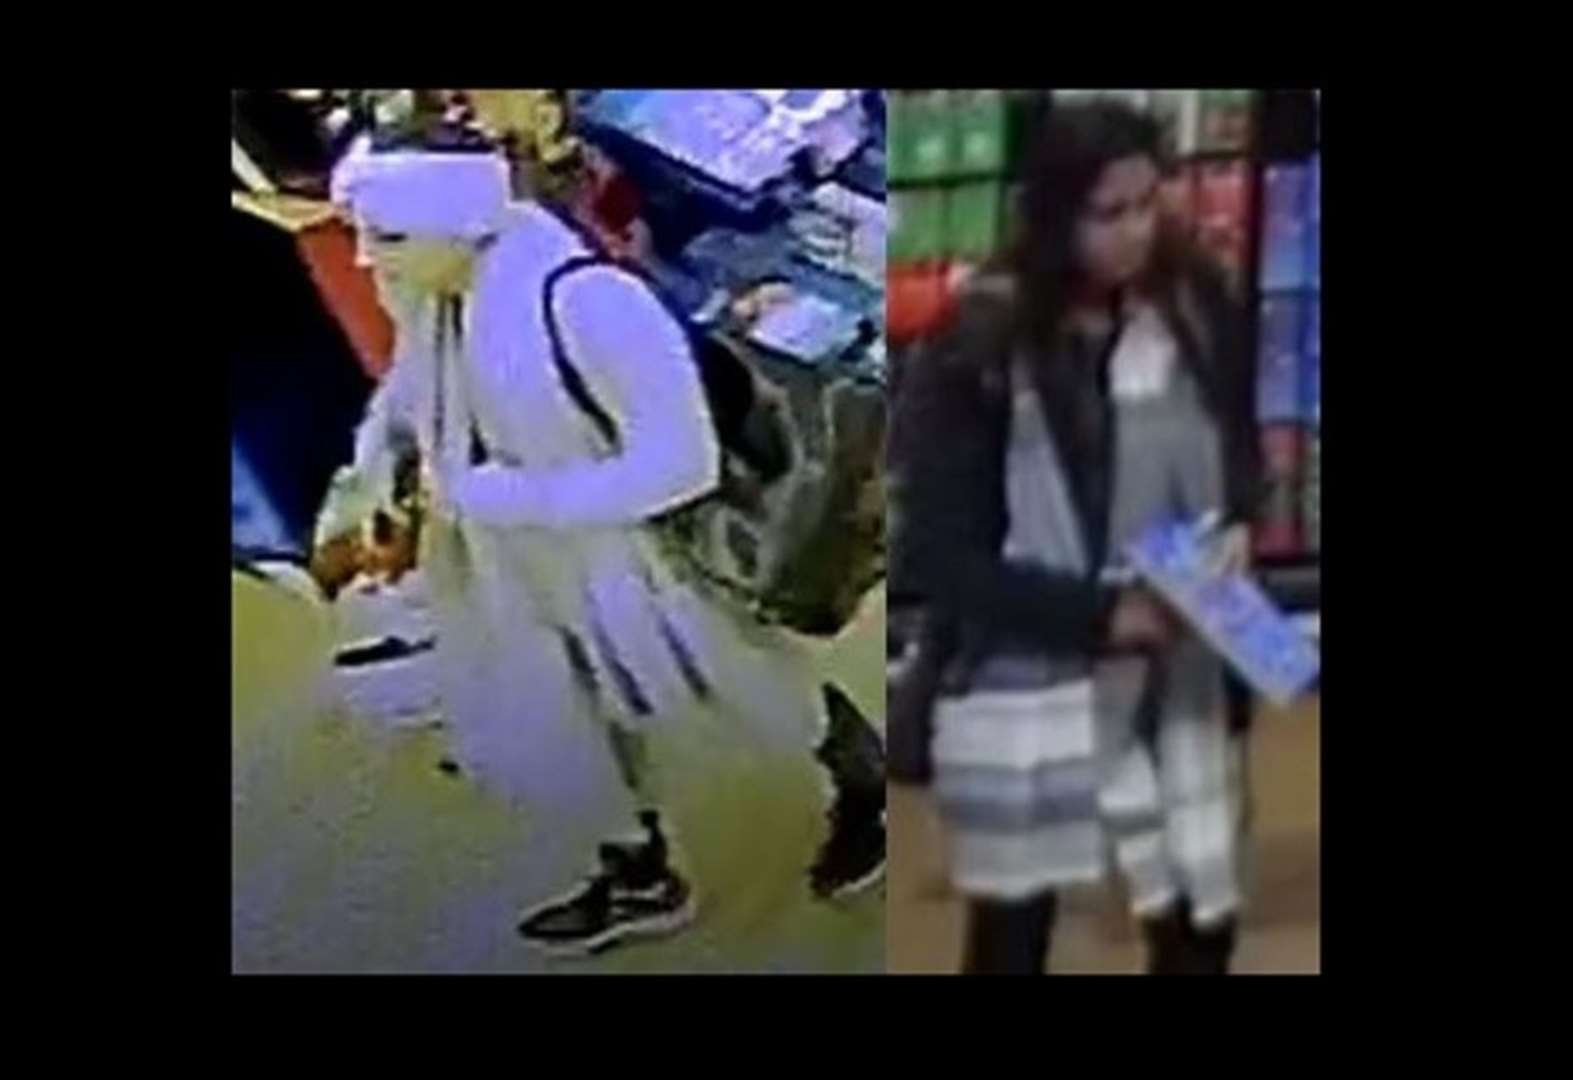 Woman has purse stolen from her bag in Jackson Square shop